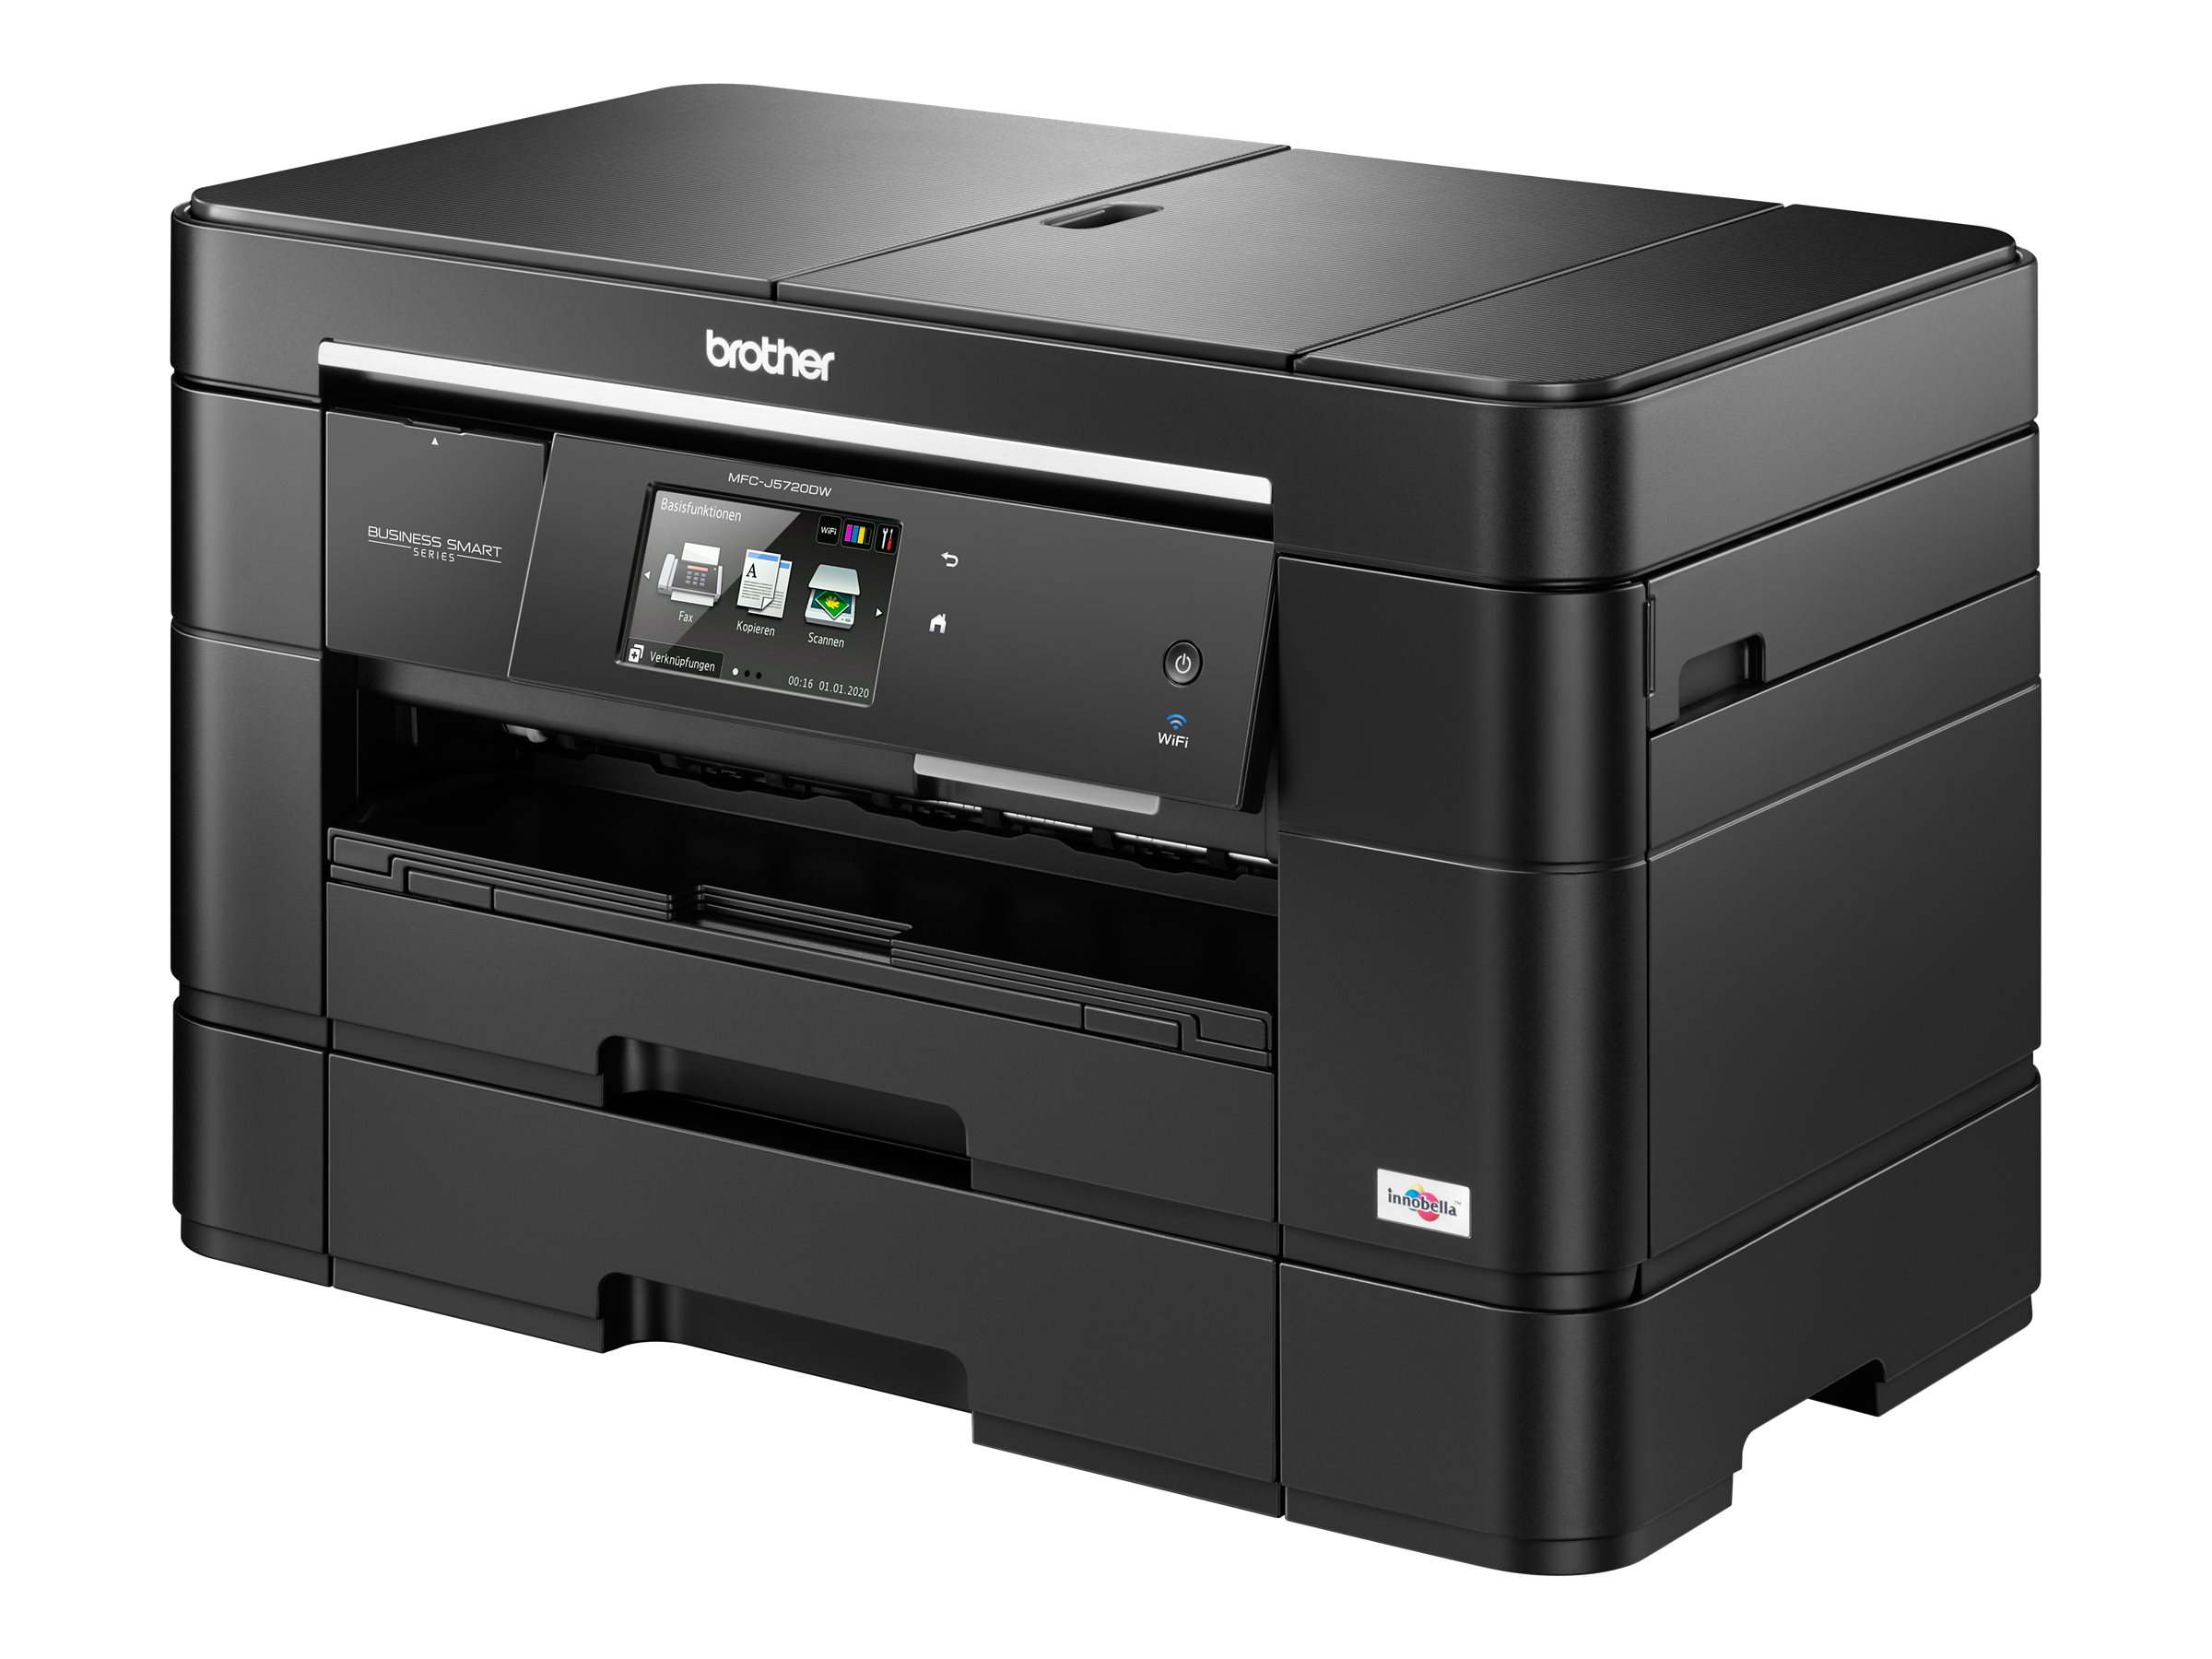 Brother MFC-J5720DW Business Smart Plus Inkjet All-in-One